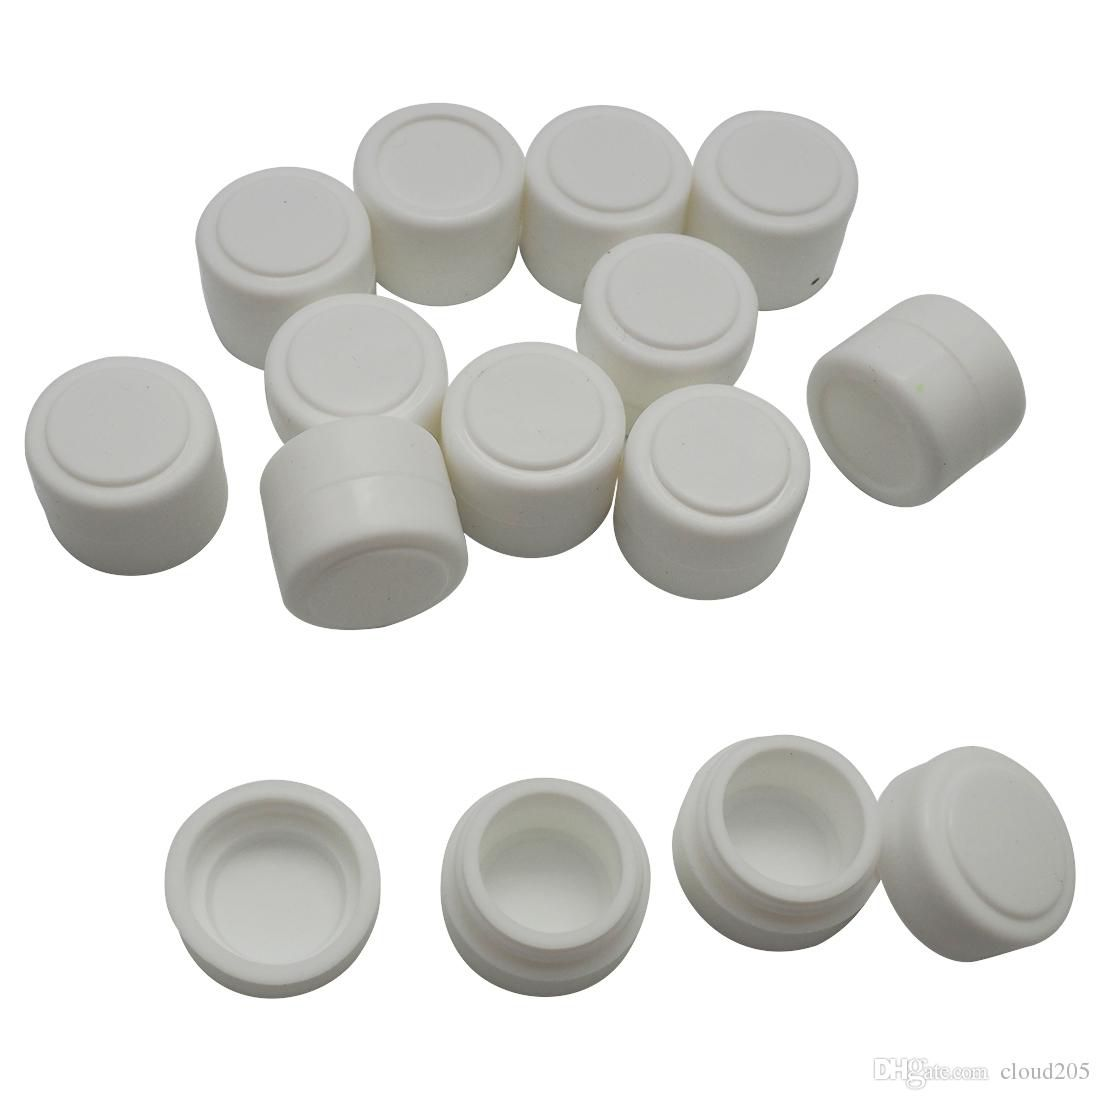 200 pieces/ lot wholesale the mini round Non-stick Silicone Container For Wax Bho Oil Butane Vaporizer Silicon Jars Dab Wax Container 2 ml